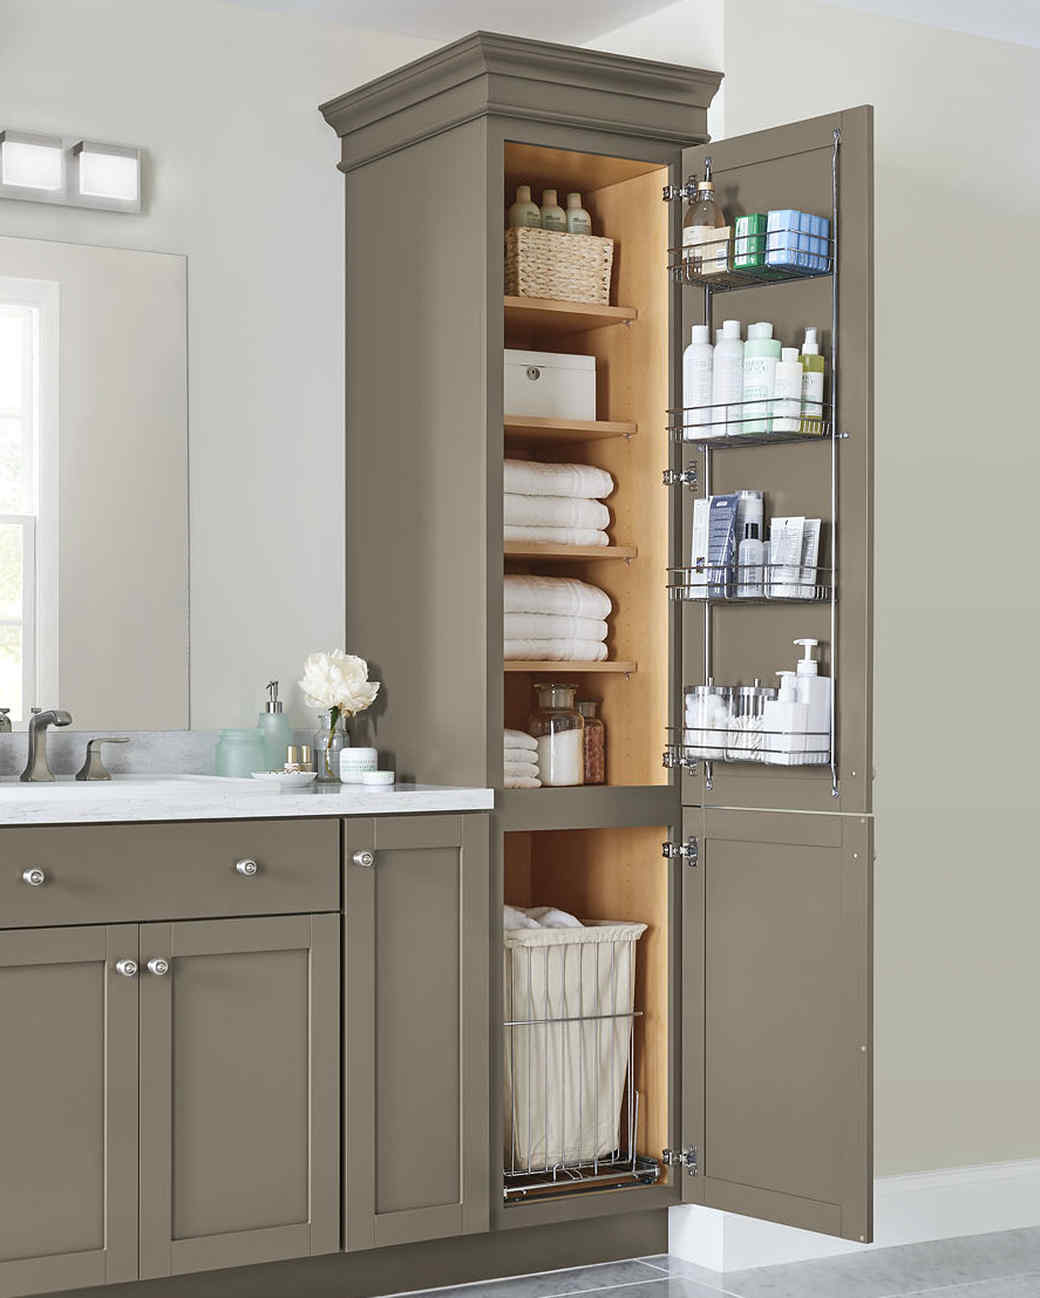 Martha stewart collection of products storage and for Kitchen and bathroom cabinets